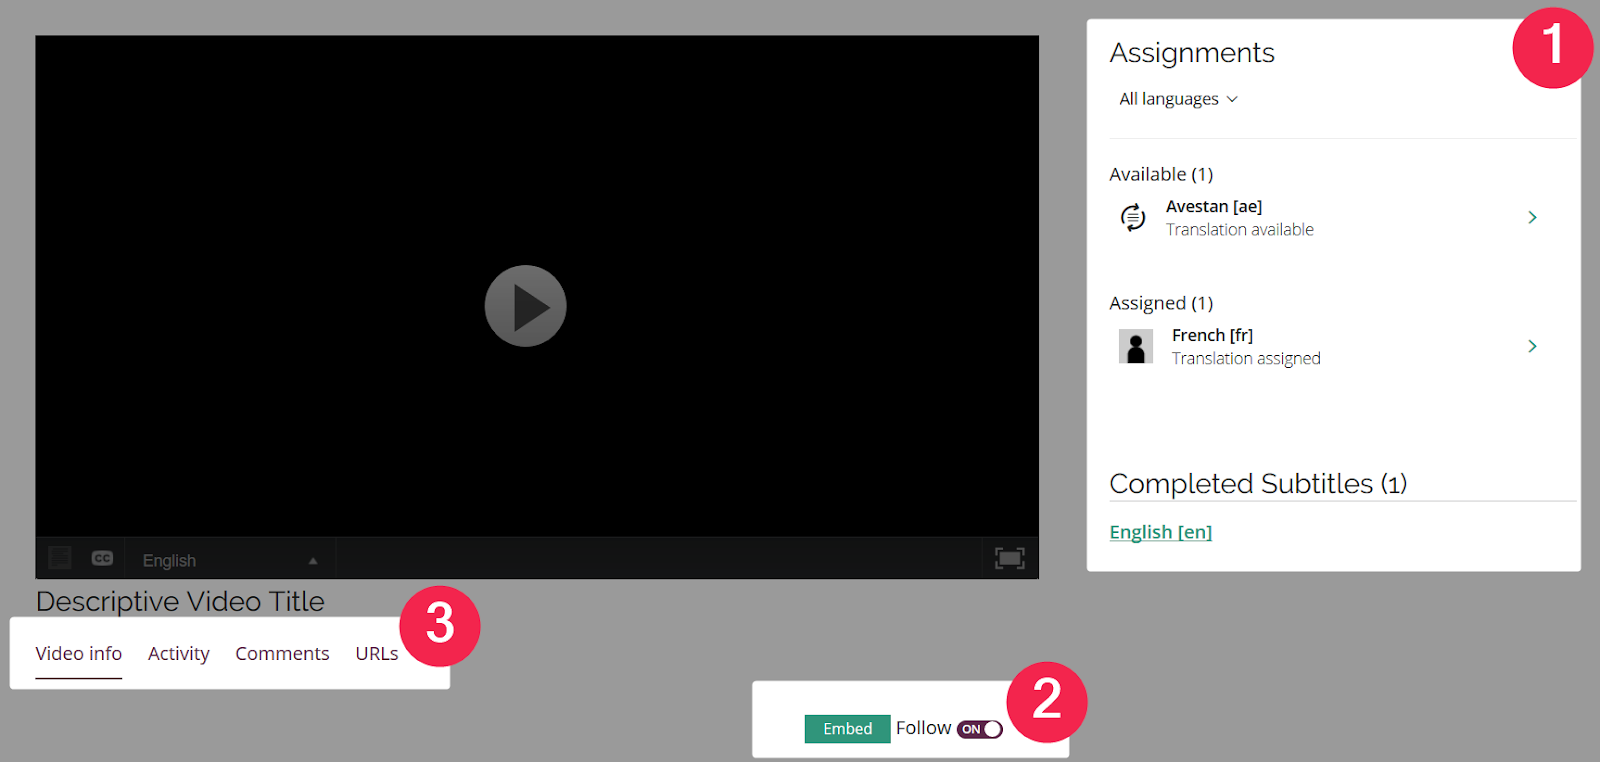 Assignment, embed and follow, and video information sections highlighted and numbered on the video page for a contributor on an Amara team with assignments